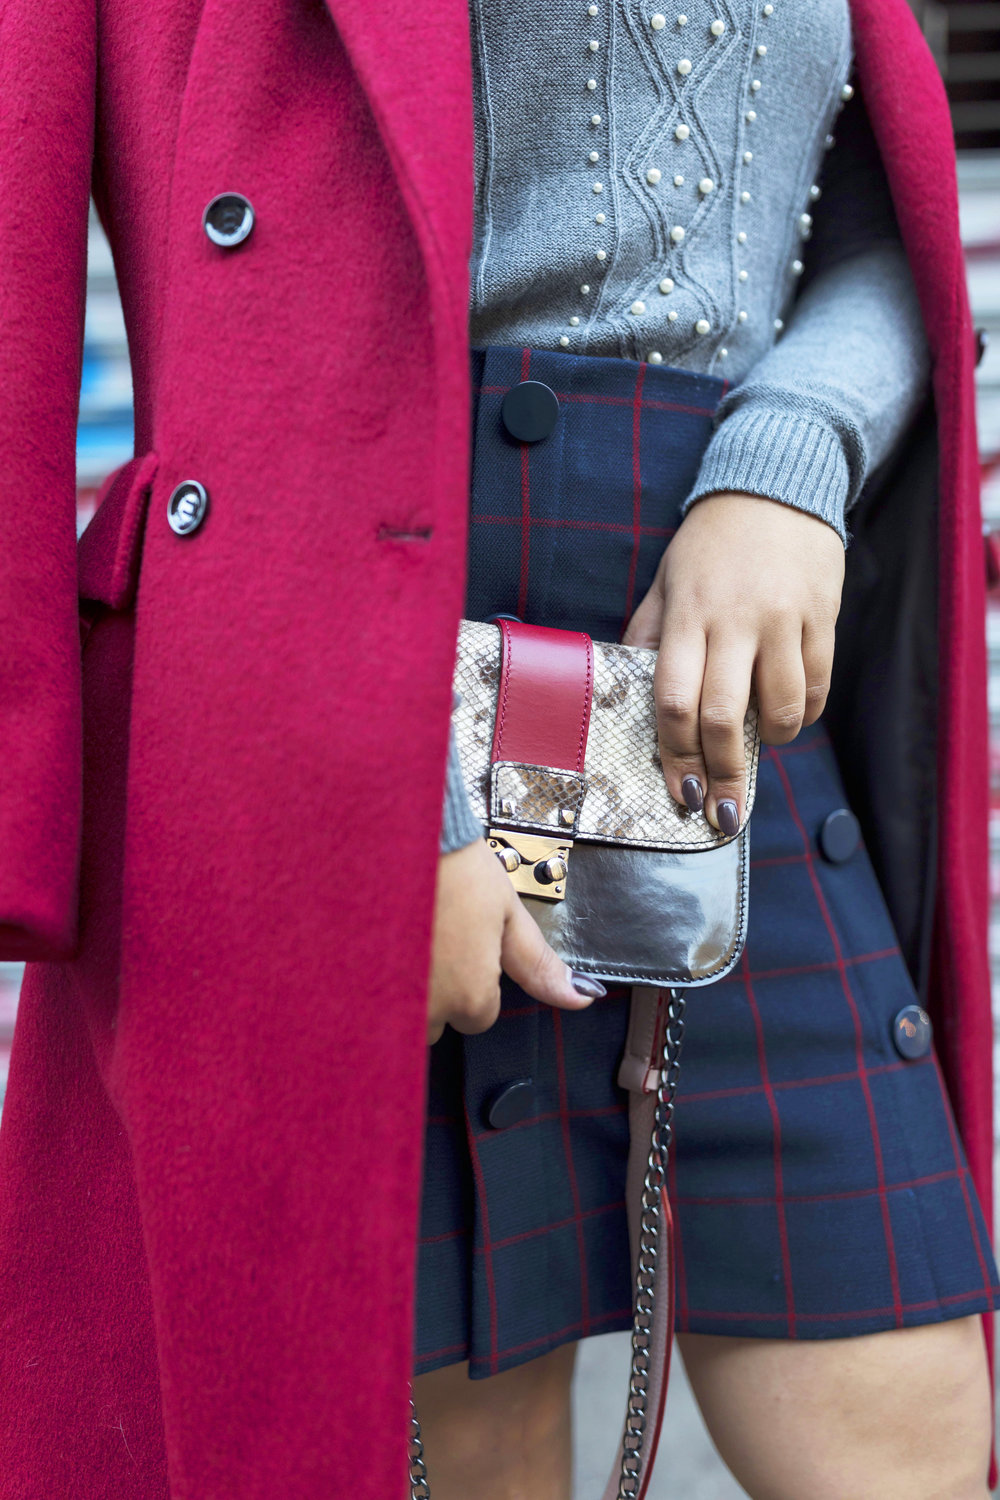 Krity S x Preppy Fall Outfit x Red Coat10.jpg